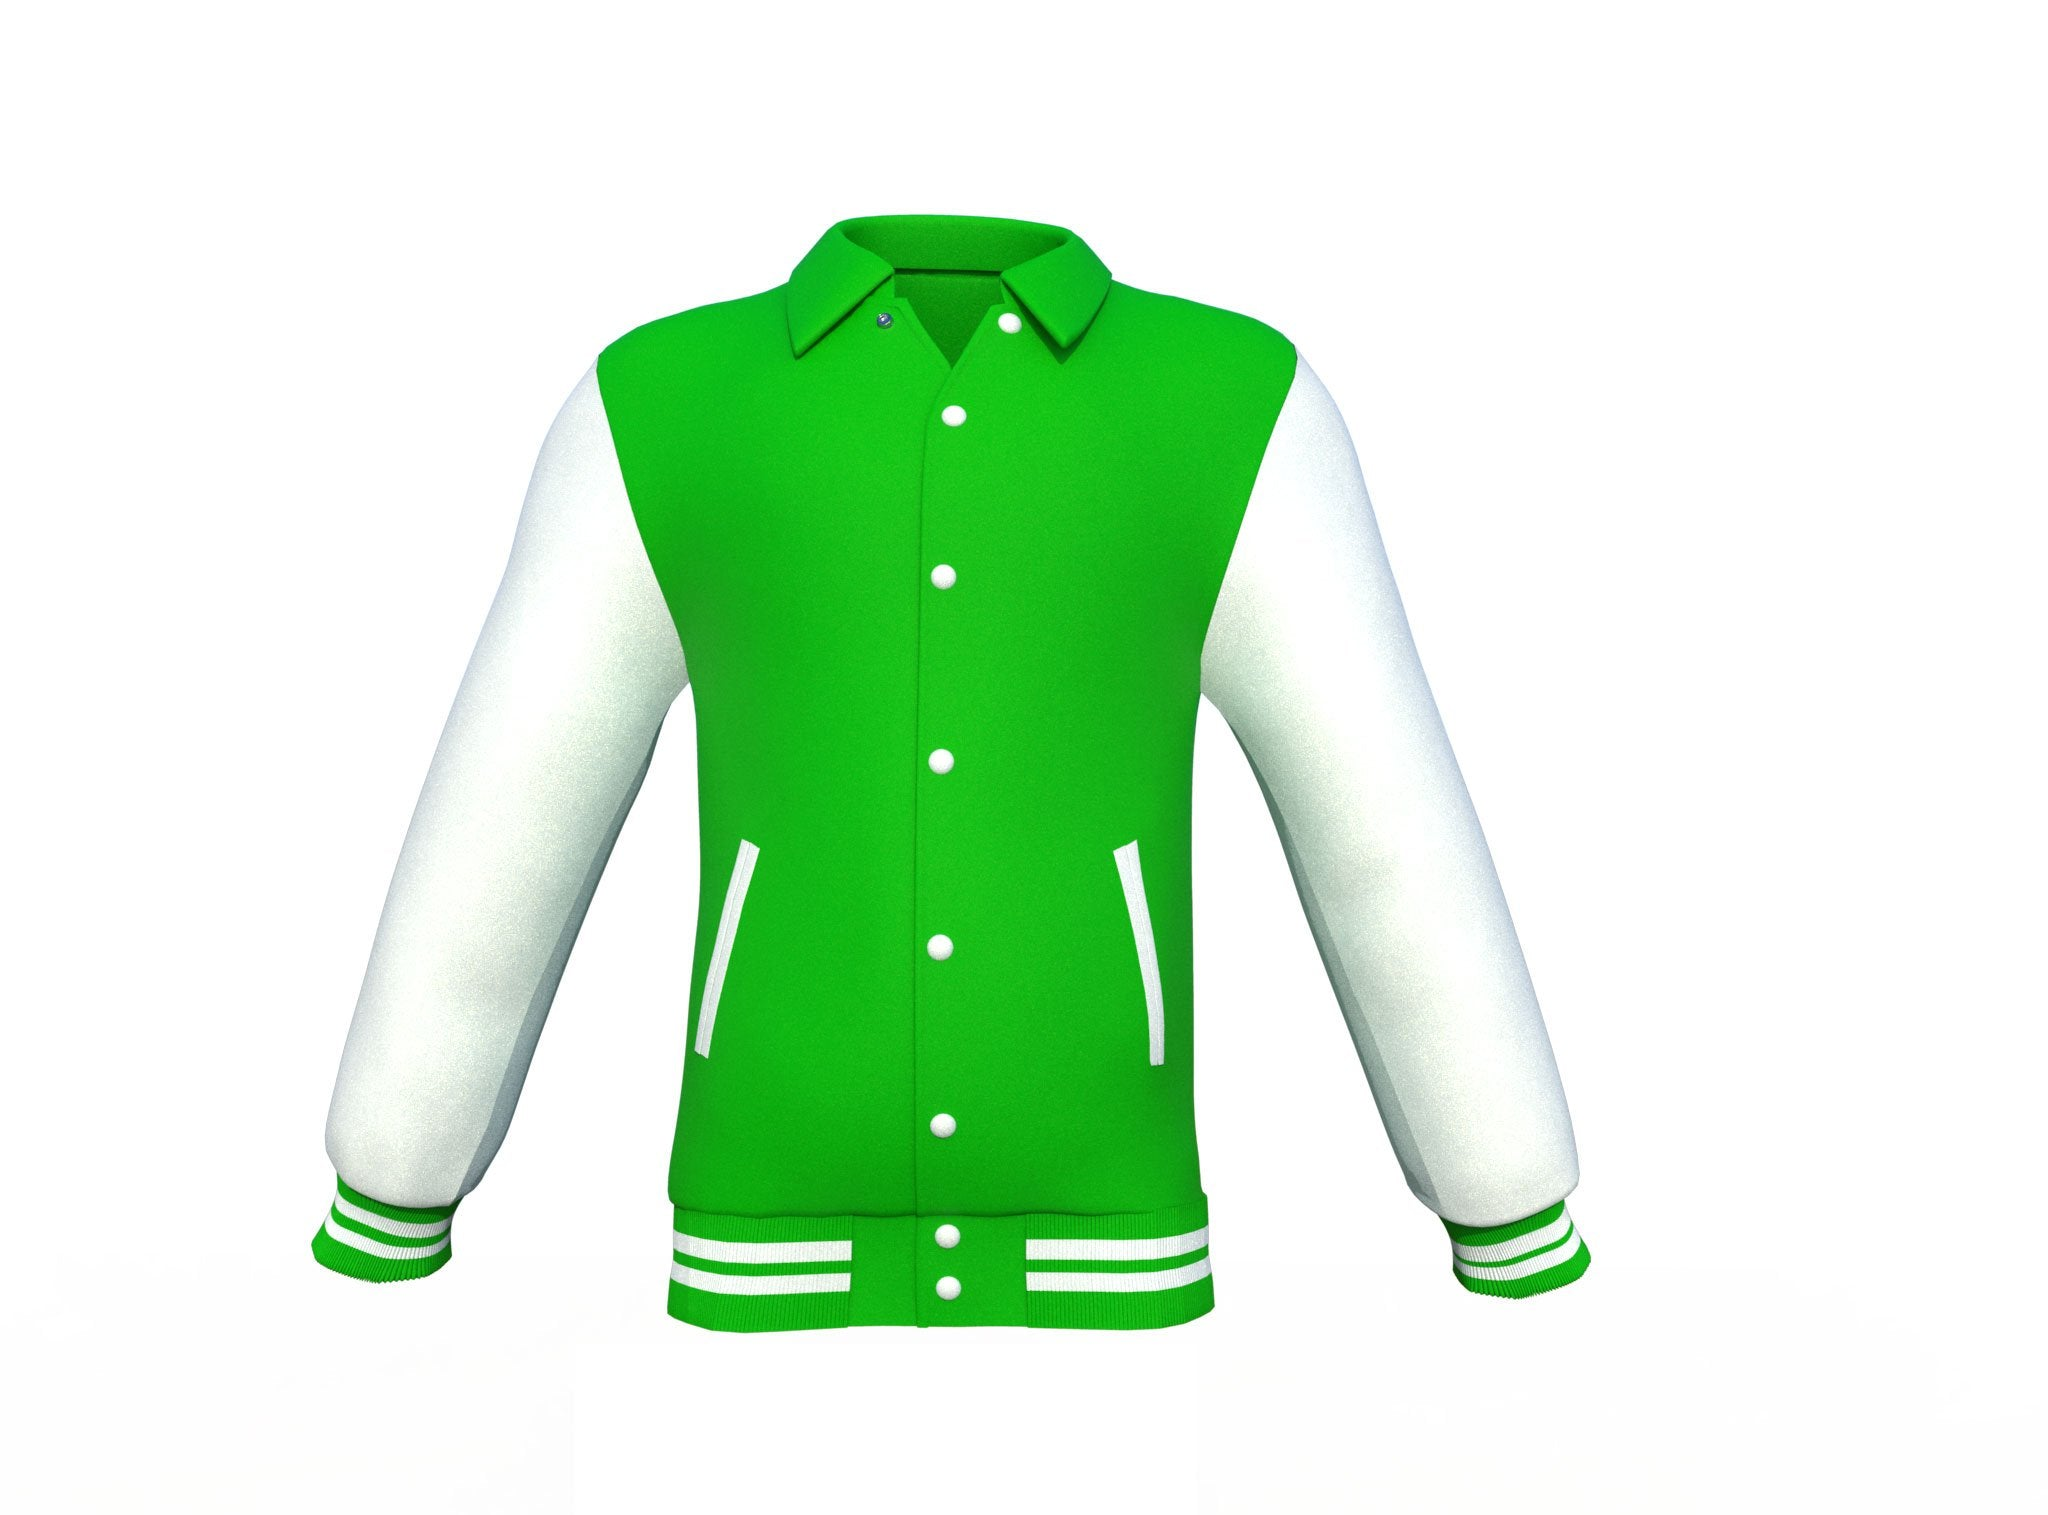 Light Green Varsity Letterman Jacket with White Sleeves